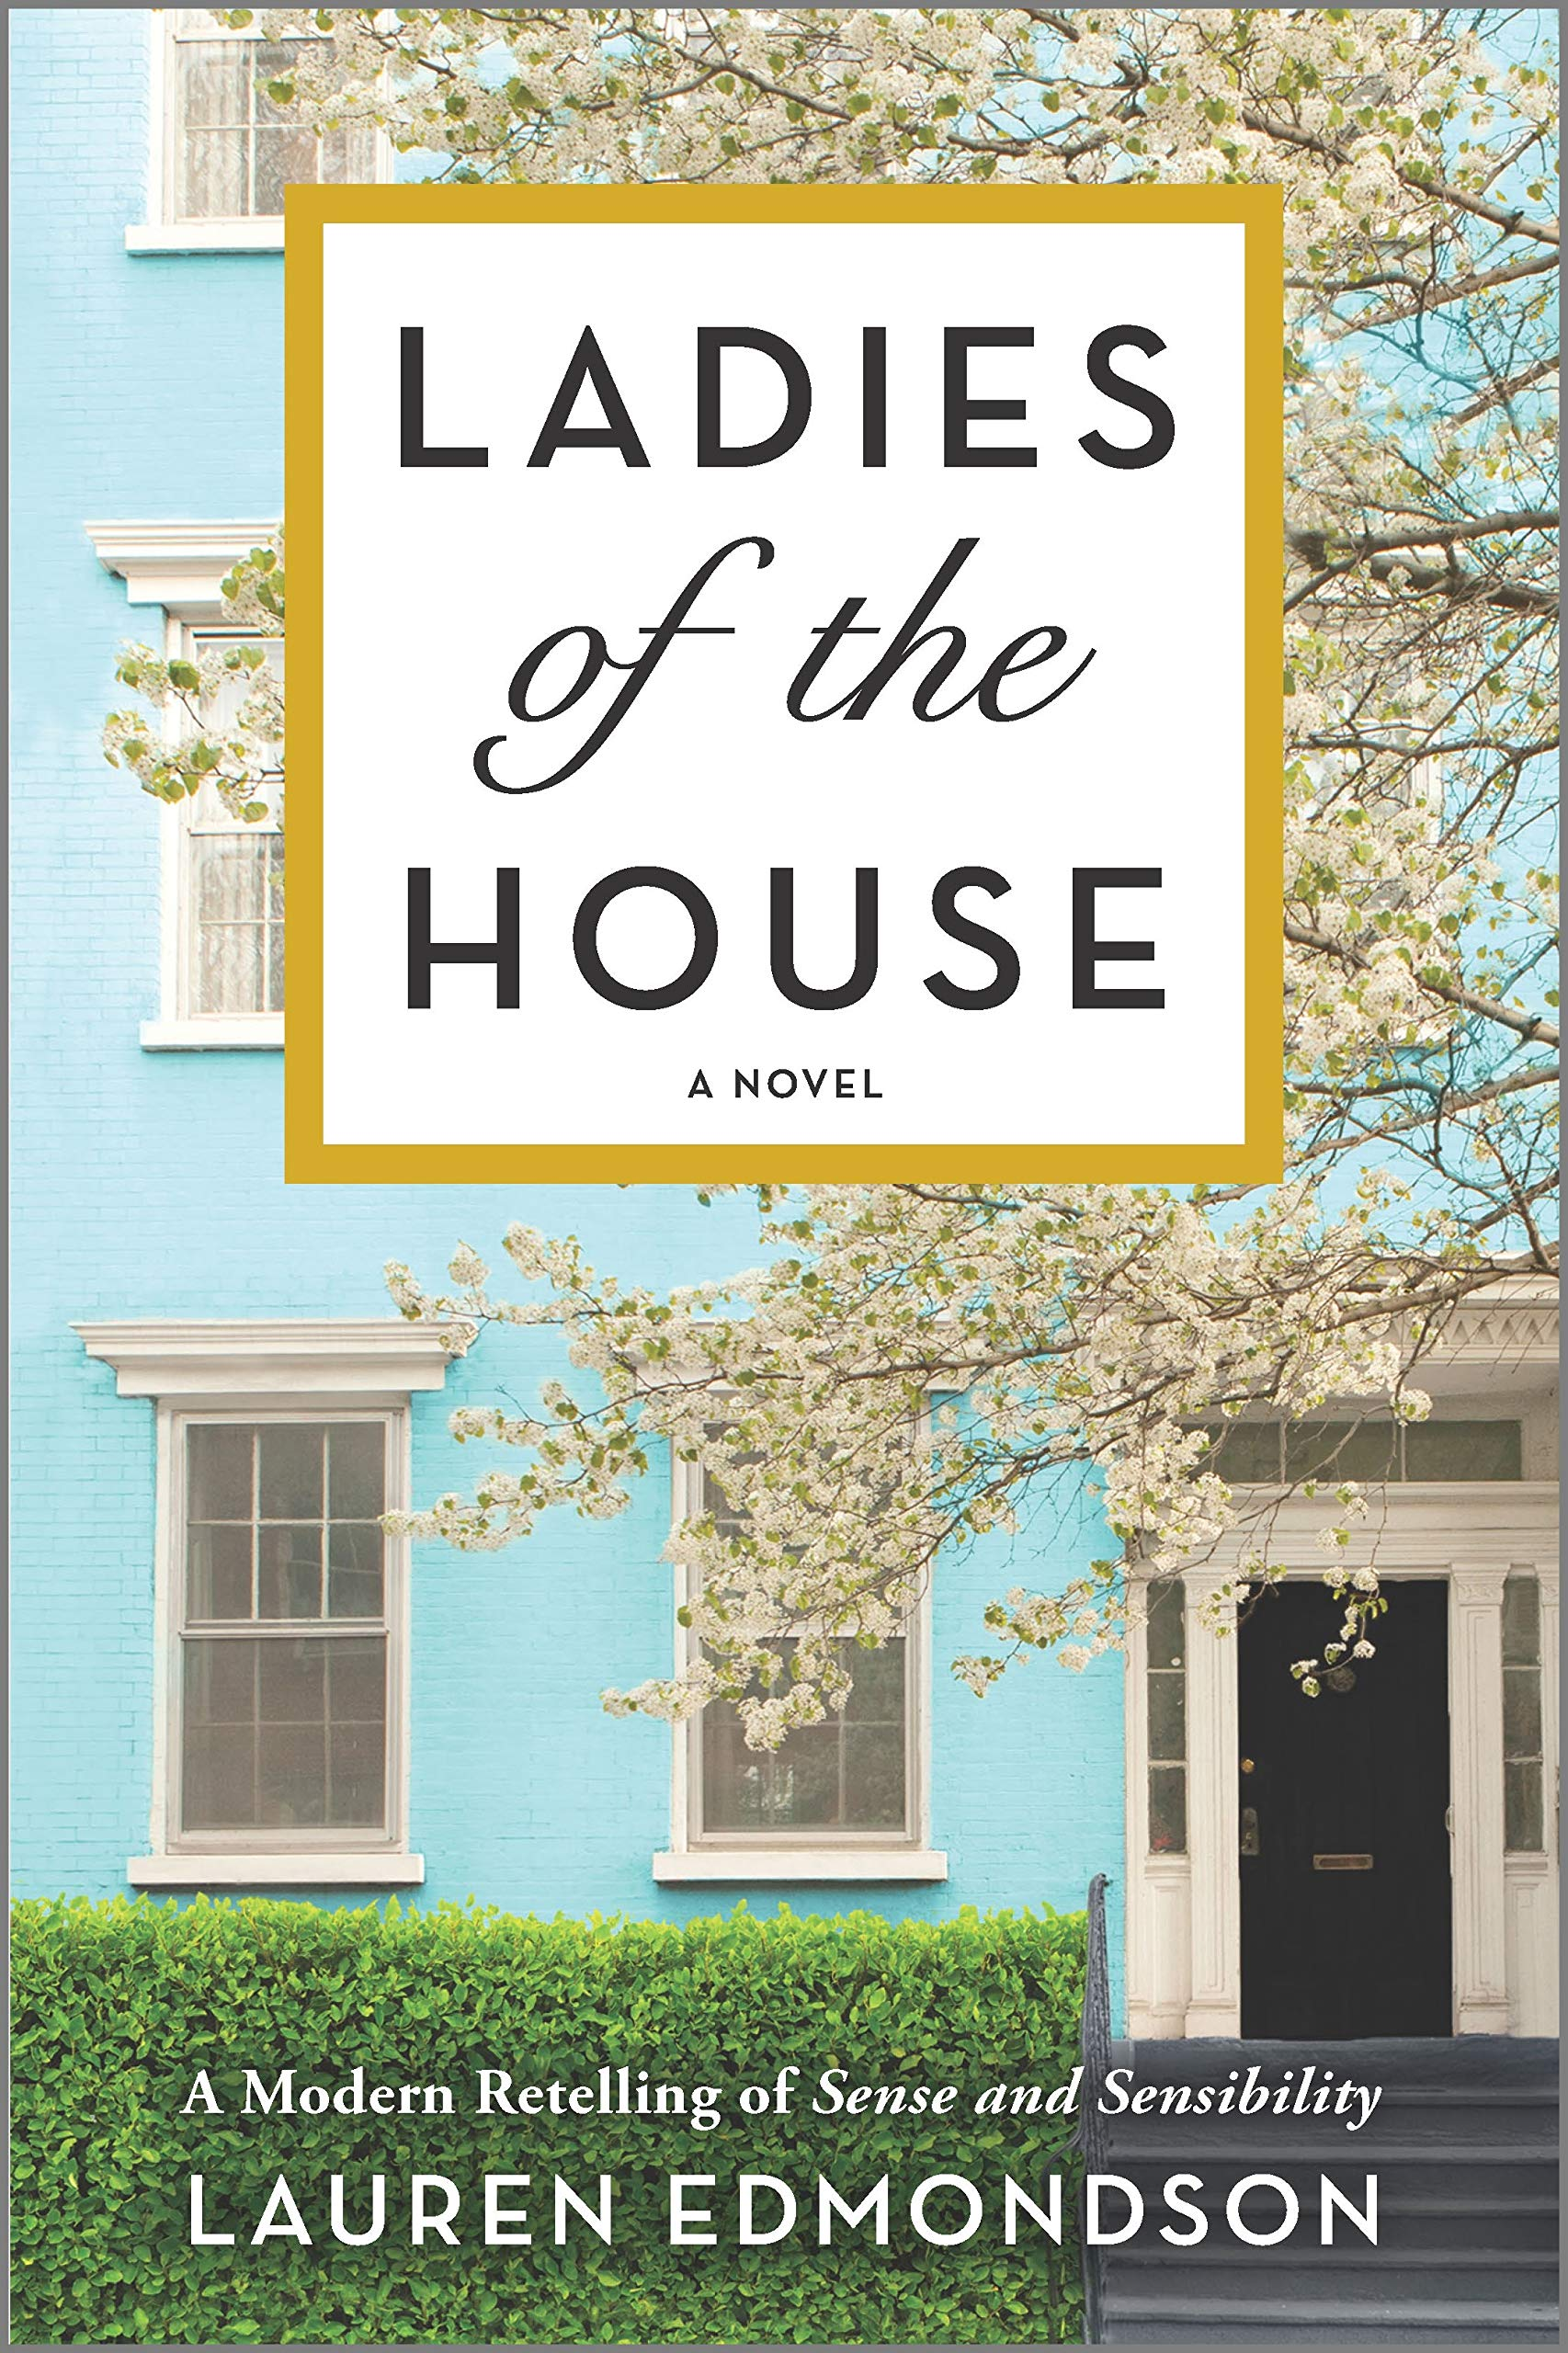 The Ladies of the House by Lauren Edmondson 2021